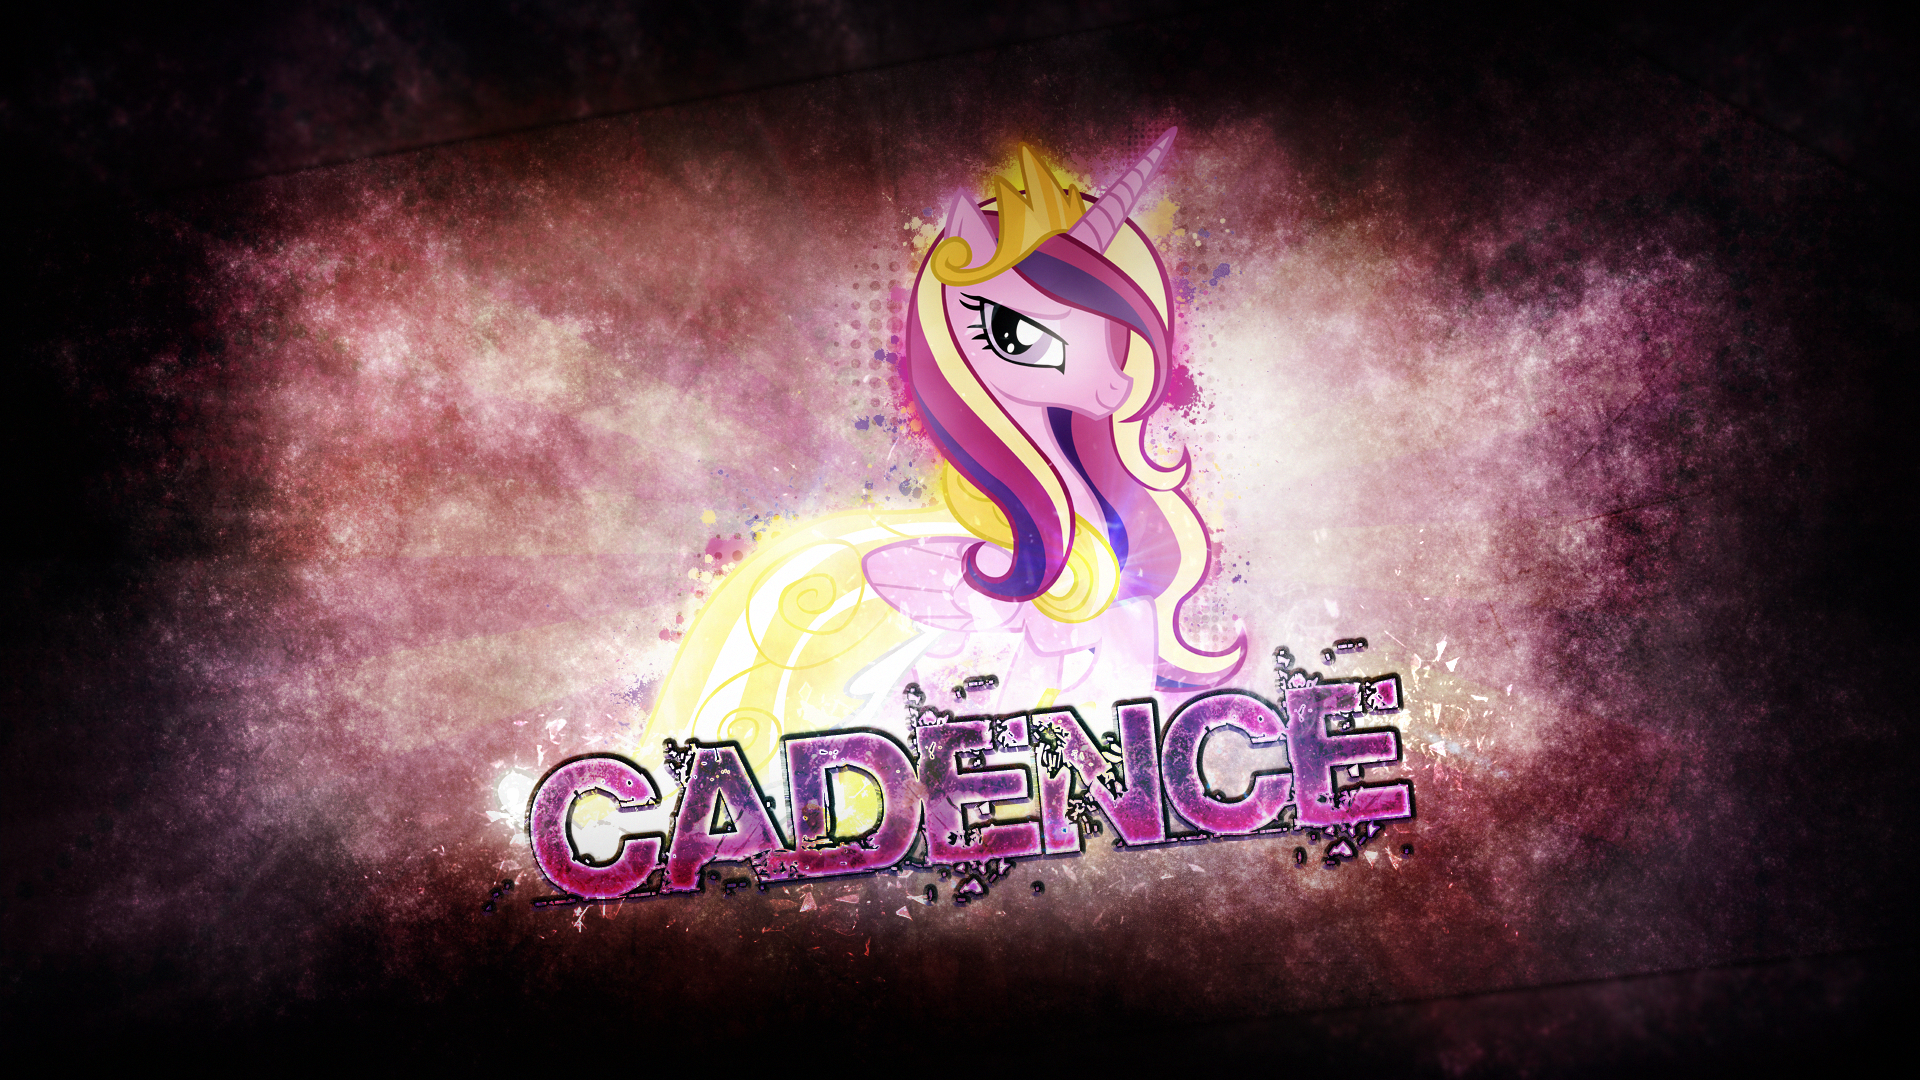 Wallpaper ~ Cadence. by Mackaged